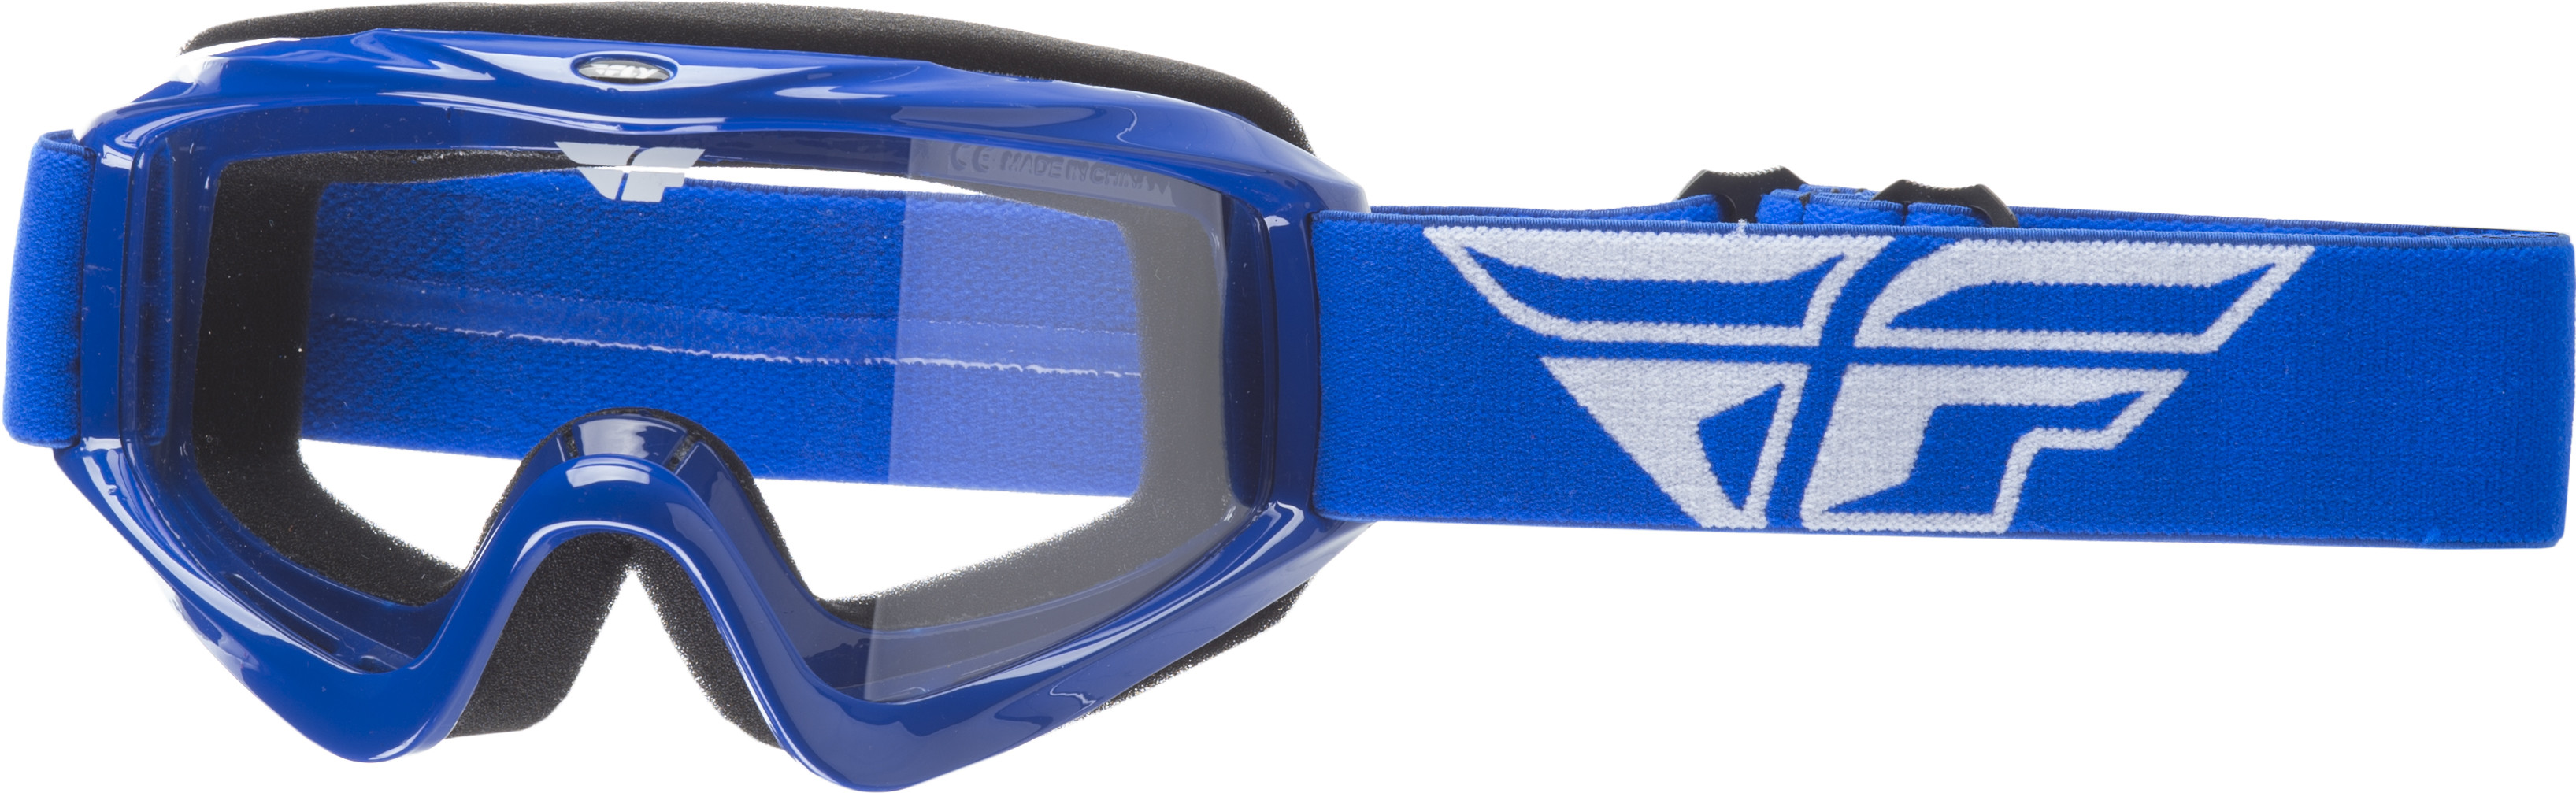 Focus Goggle Blue W/Clear Lens